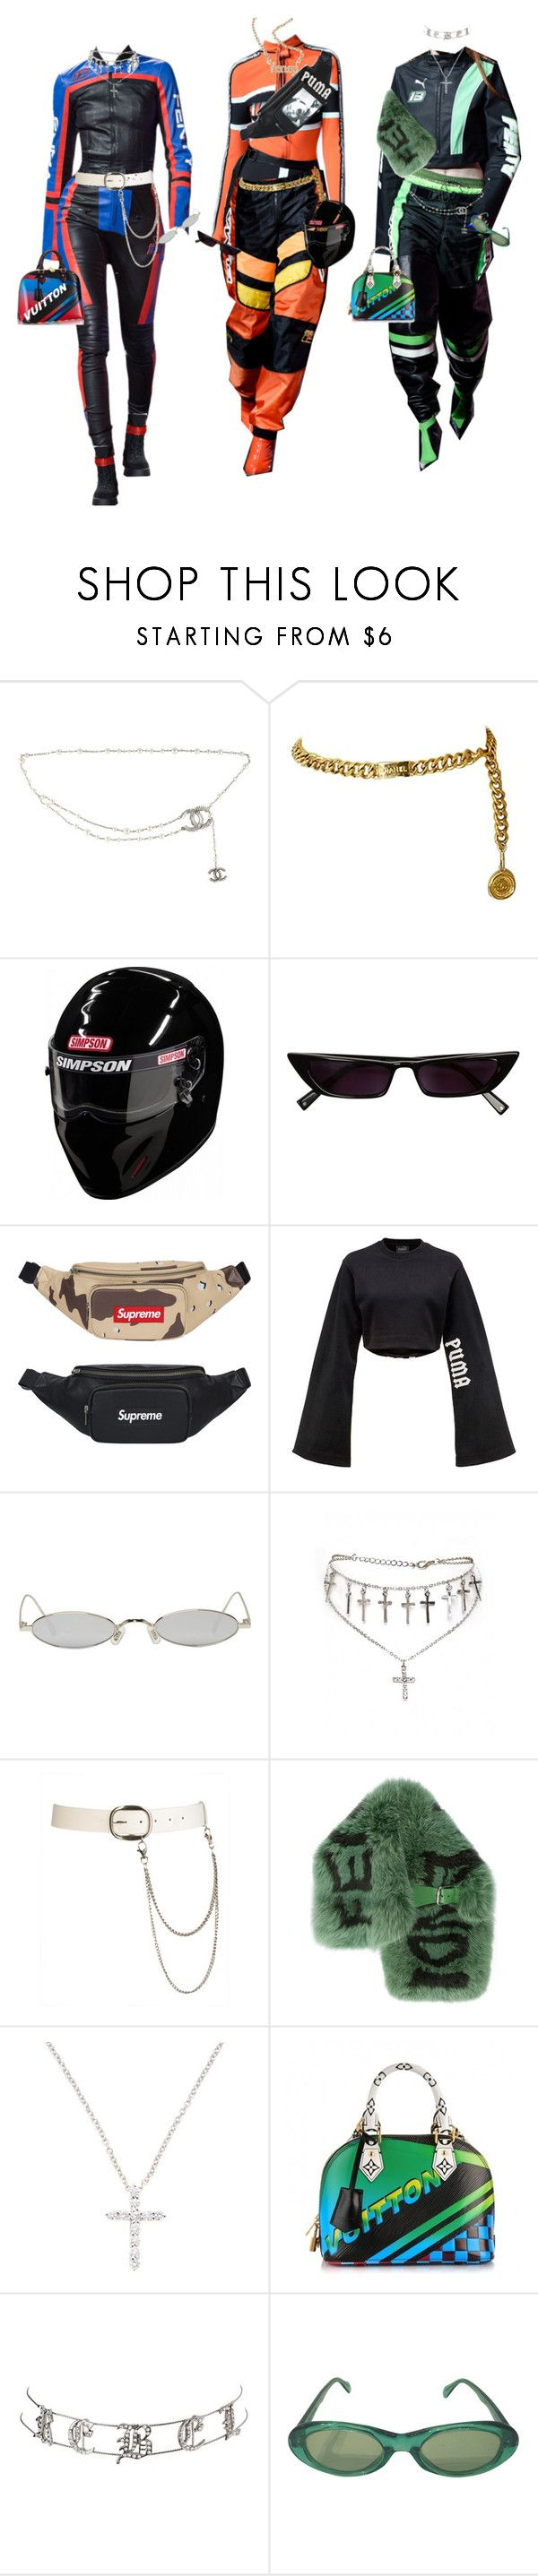 """motorsport"" by keithmontgom ❤ liked on Polyvore featuring Puma, Chanel, Gentle Monster, Wet Seal, Fendi, Nephora, Louis Vuitton, Charlotte Russe and Sonia Rykiel"